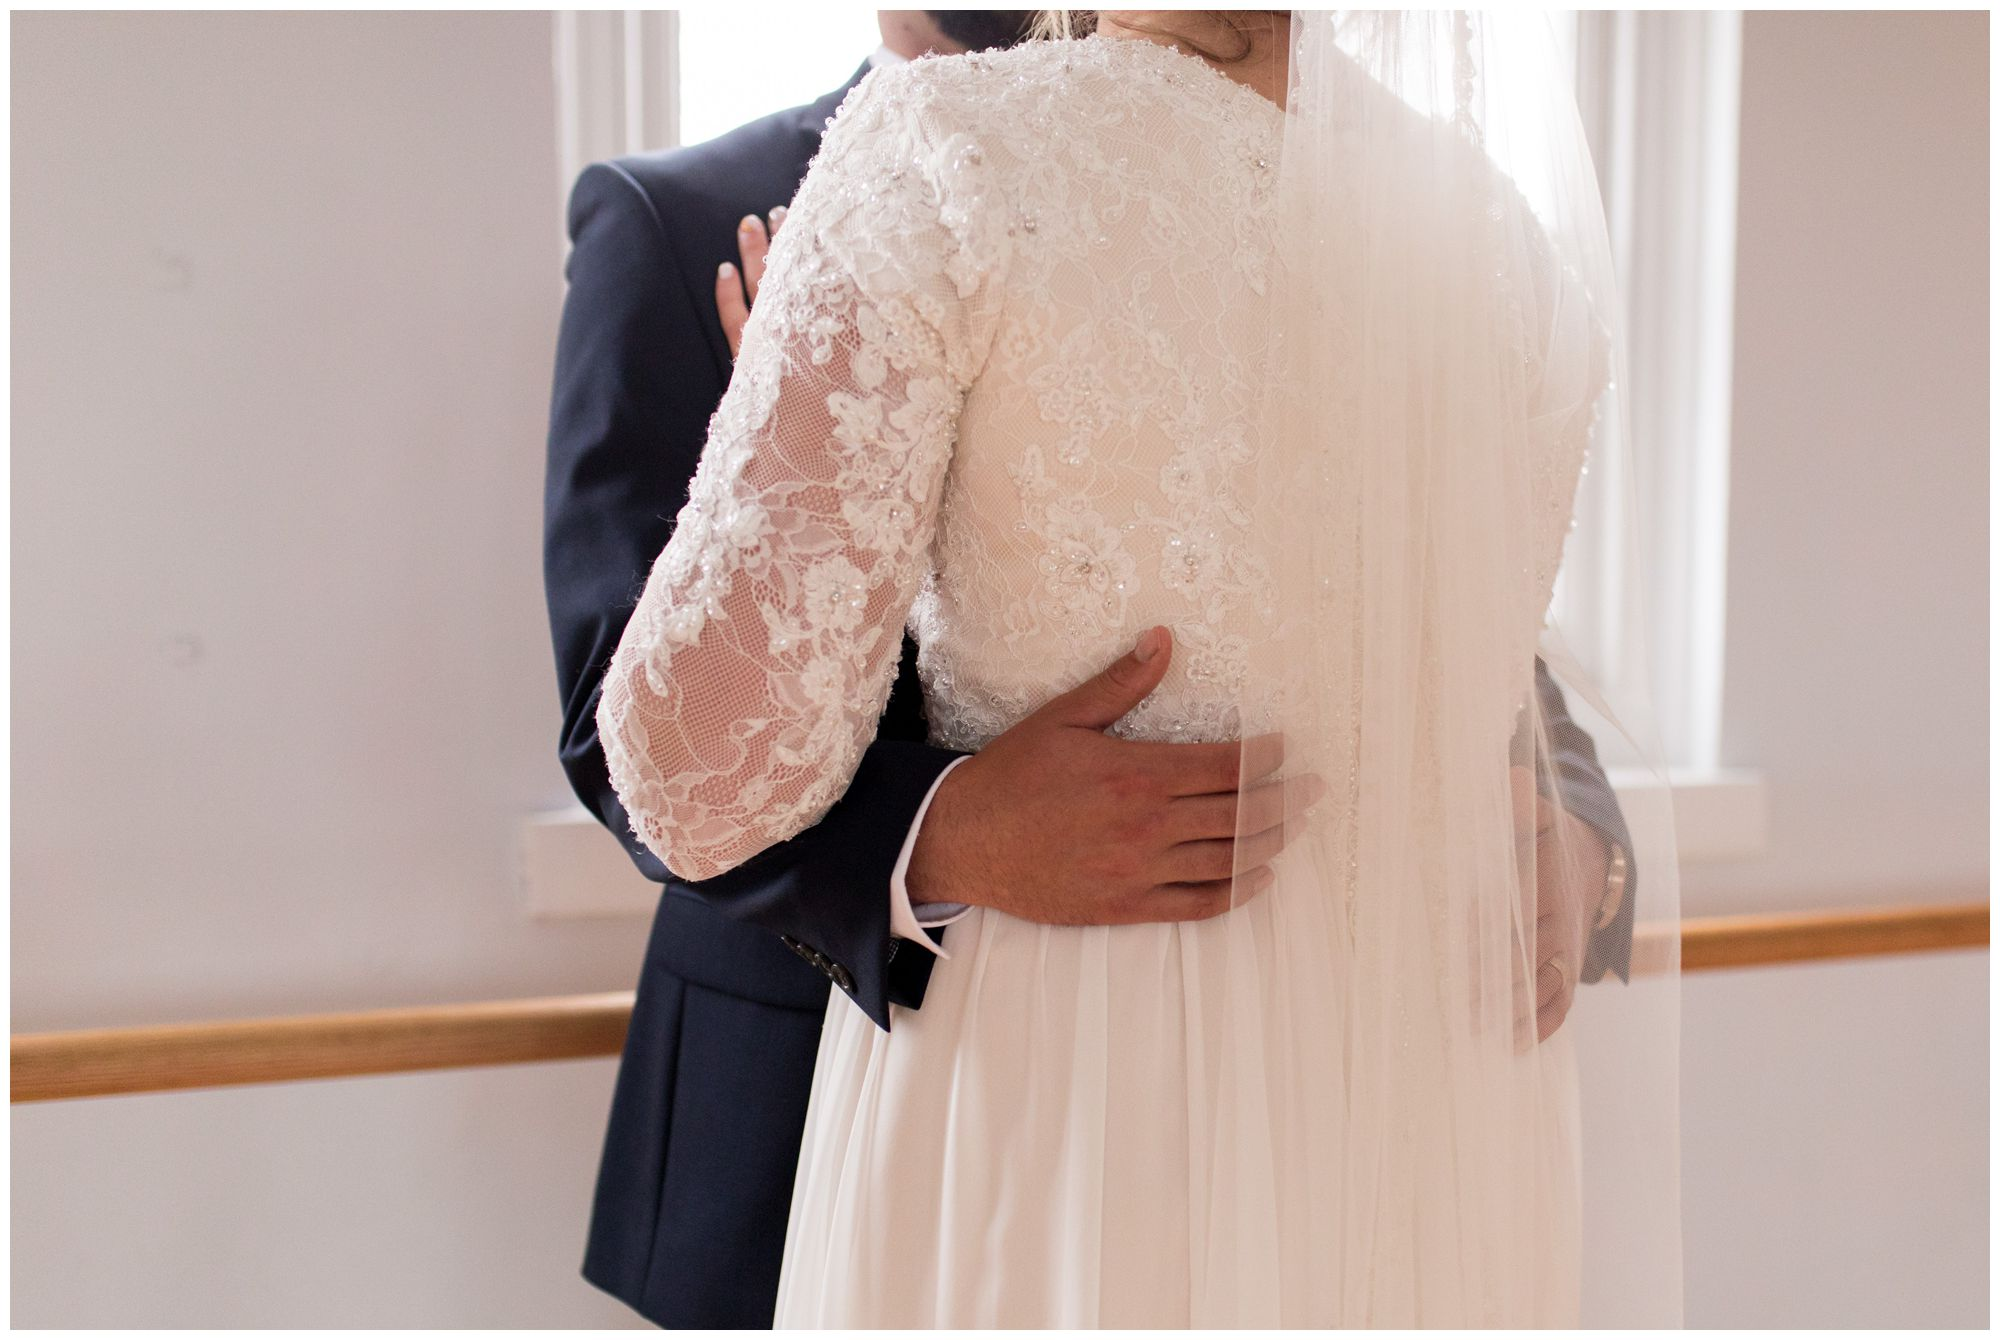 groom's hands wrapped around bride's back during wedding portraits at Cornerstone Center for the Arts